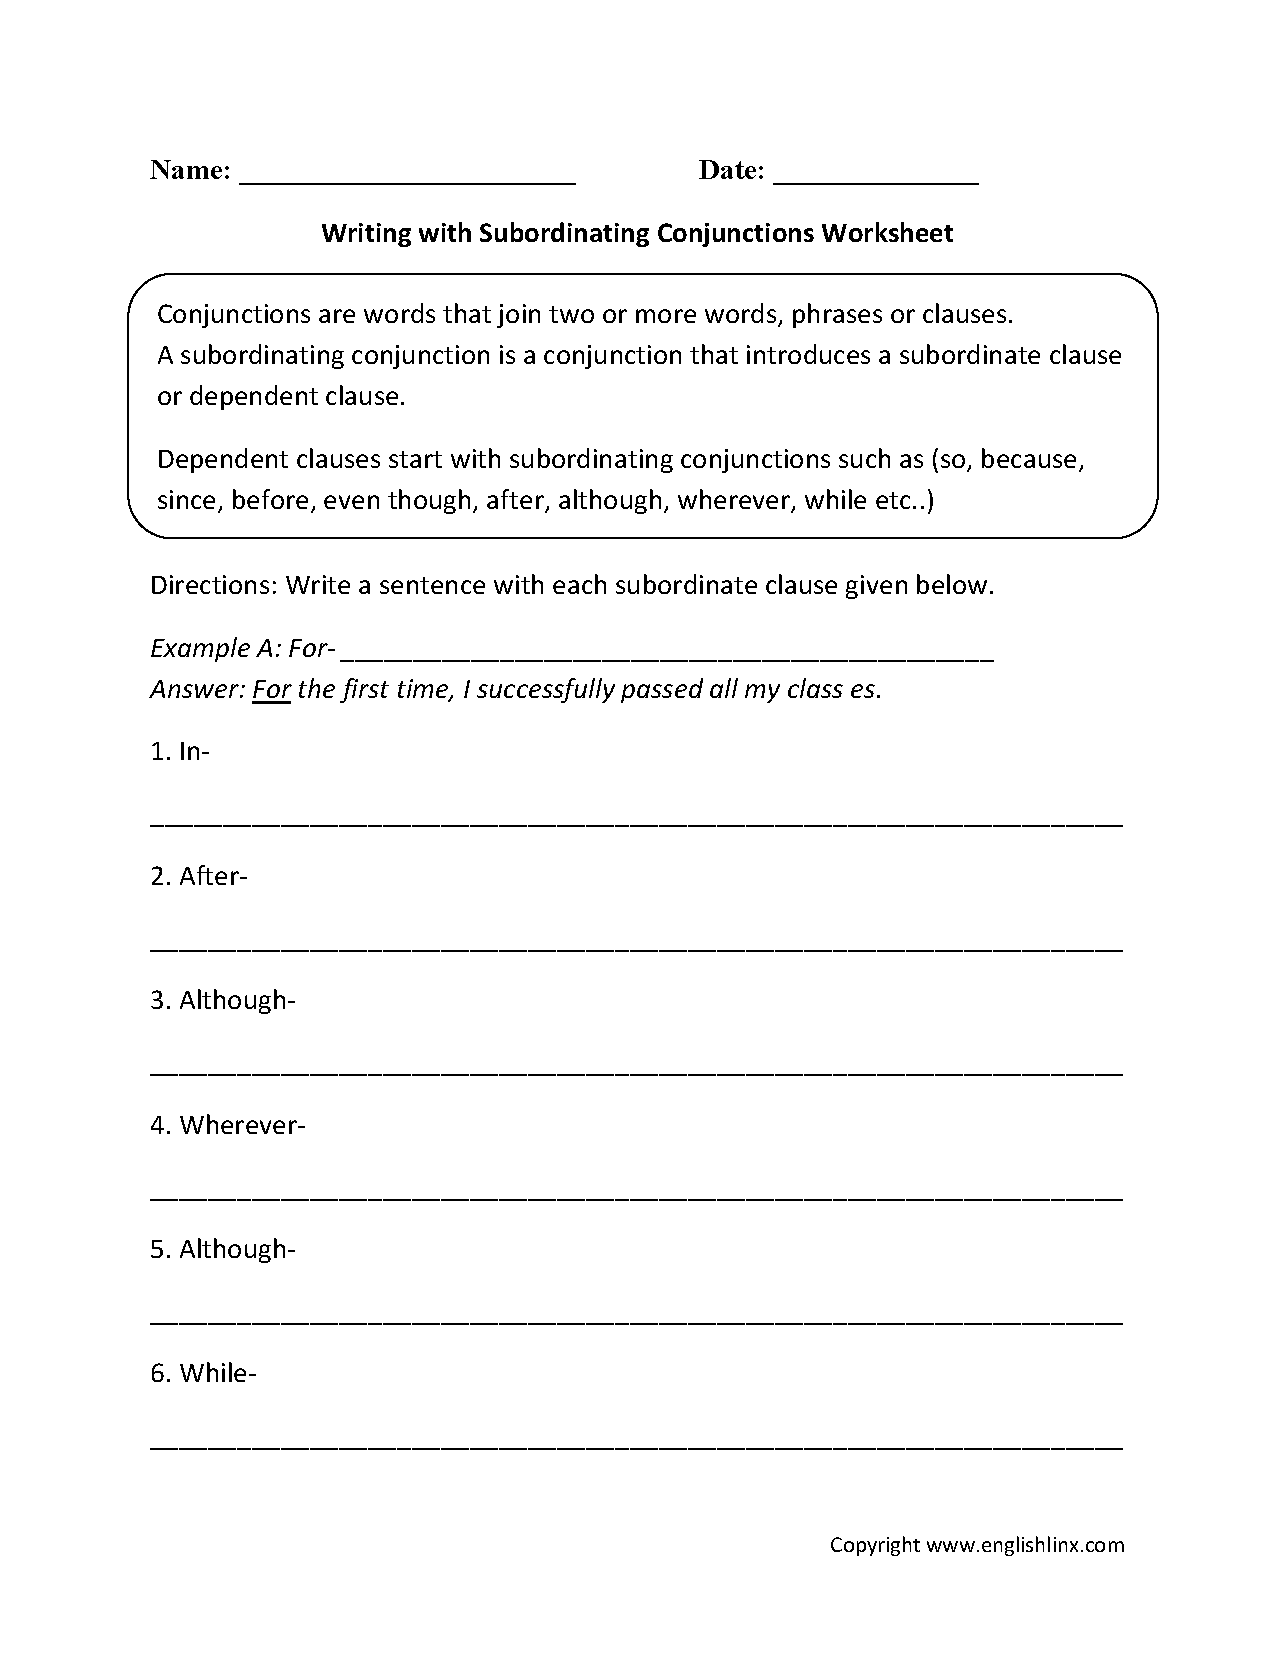 Worksheets Correlative Conjunctions Worksheets englishlinx com conjunctions worksheets subordinating worksheets